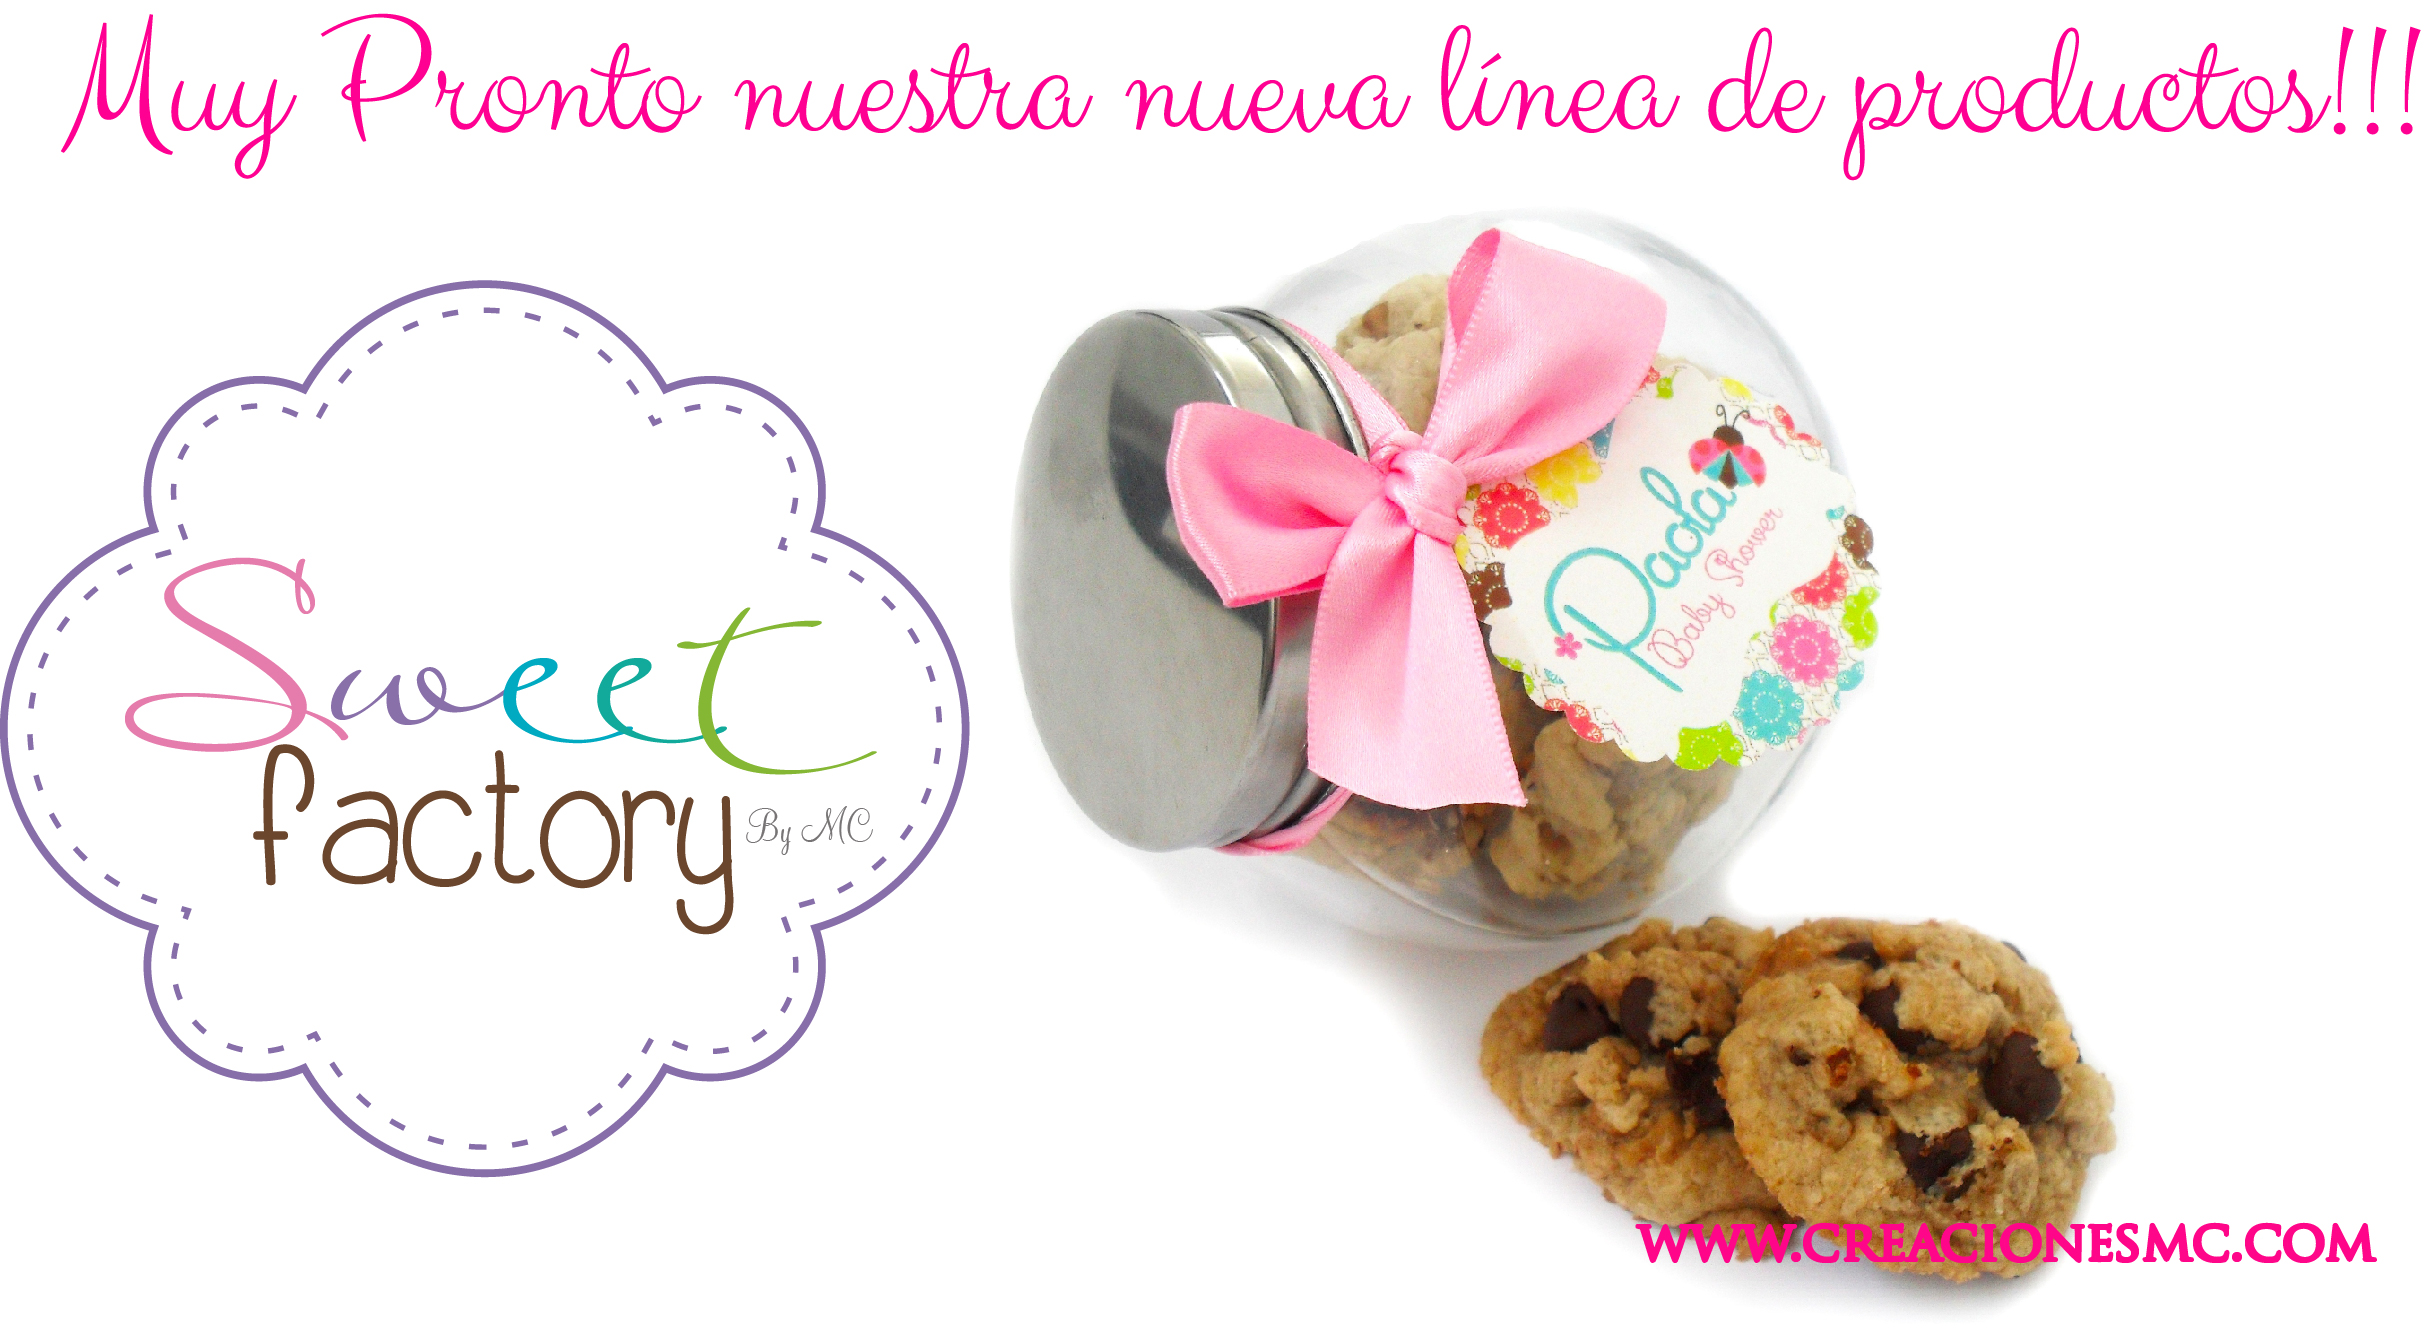 Sweet factory muy pronto